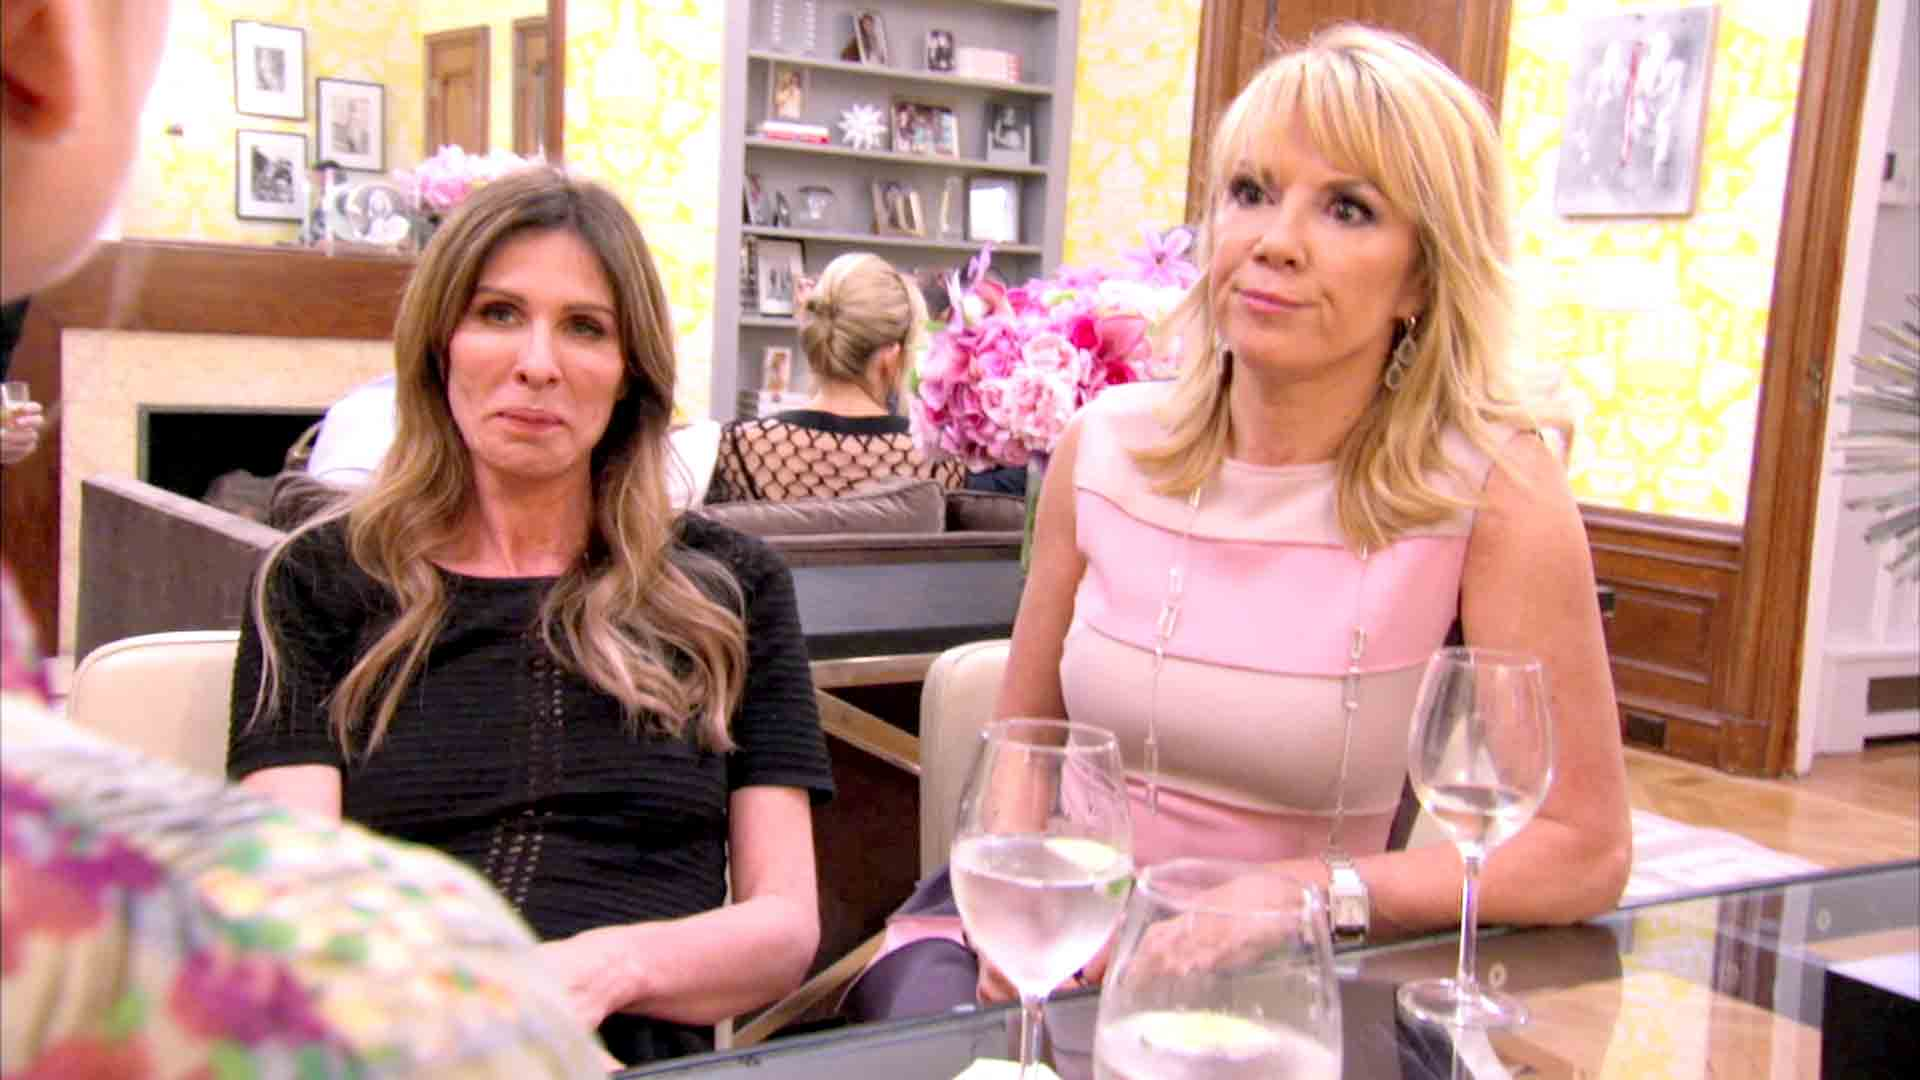 Aviva Drescher Is Throwing Darts at Carole Radziwill